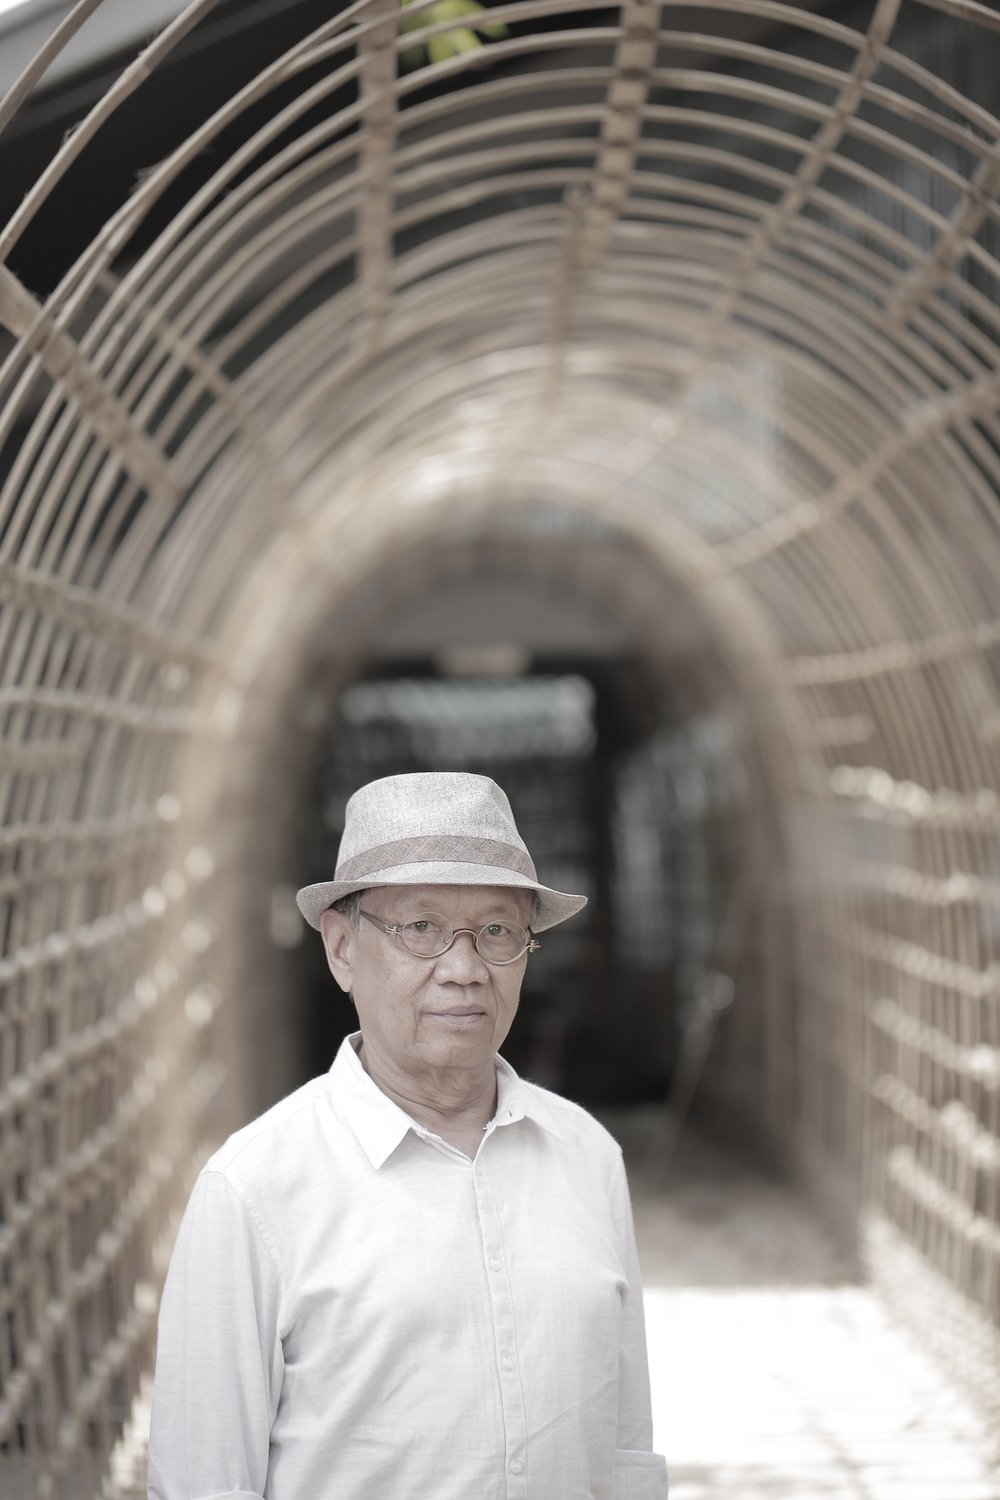 Sunaryo in front of title piece 'Lawangkala', 2018, bamboo and rattan, site-specific installation, dimensions variable. Image courtesy of Selasar Sunaryo Art Space.